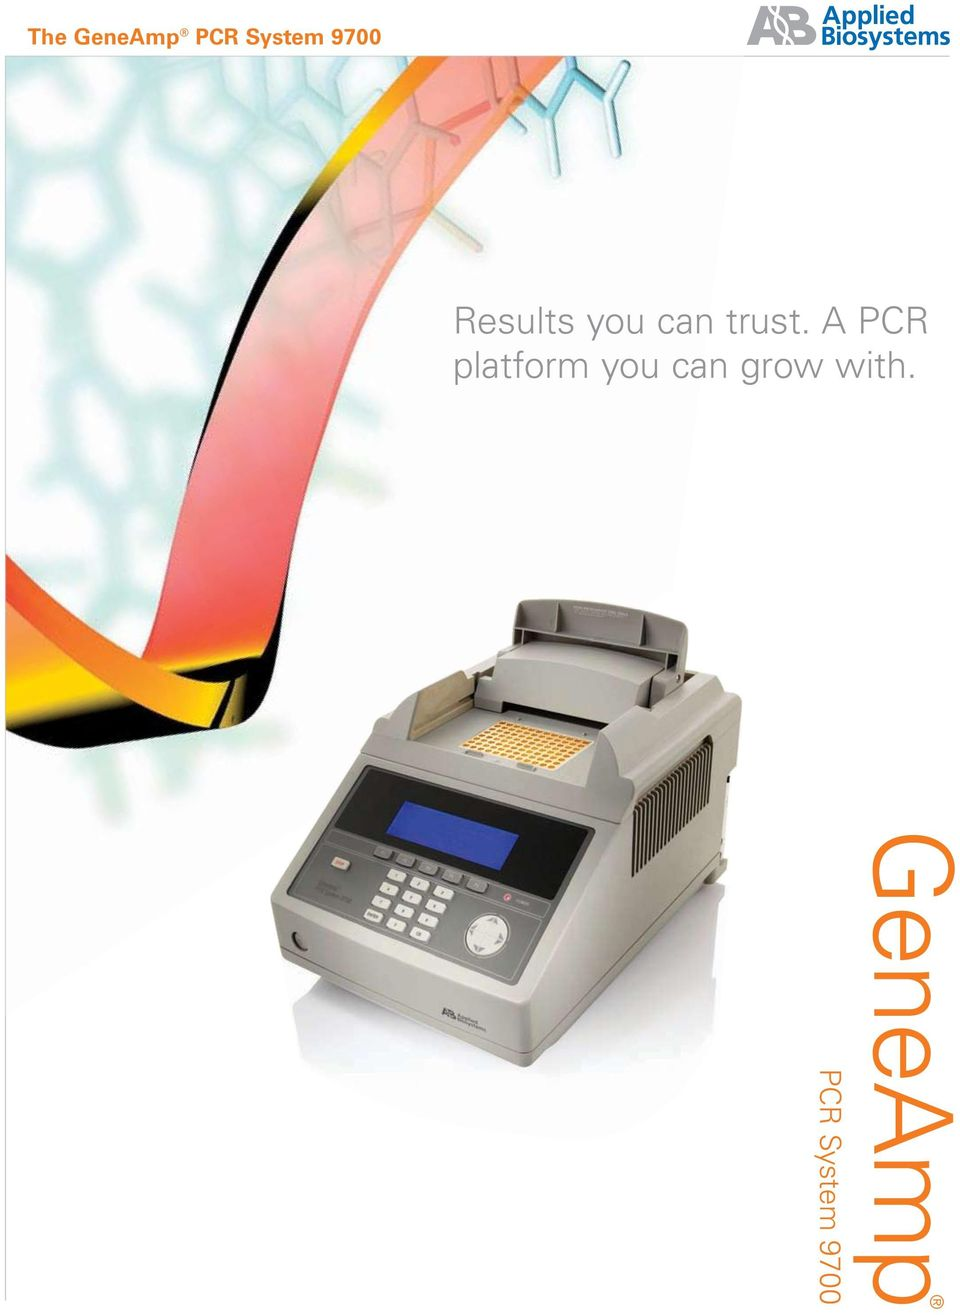 A PCR platform you can